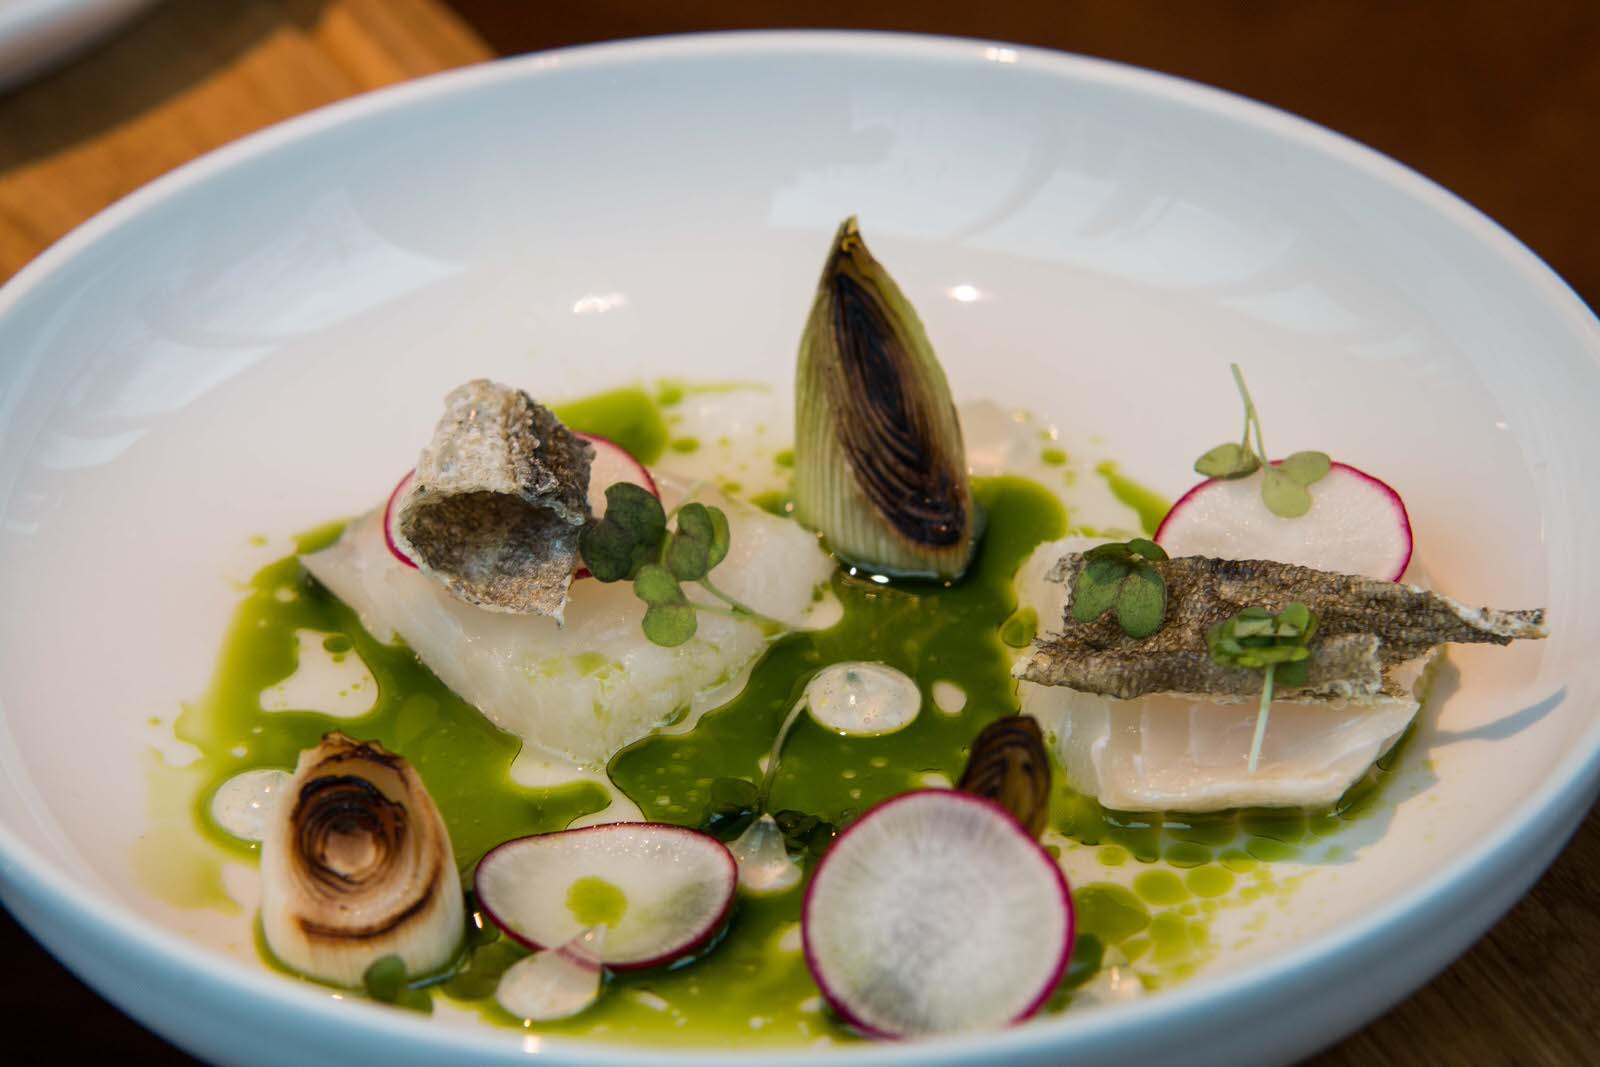 Salt cured halibut with dill, fish stock, fluid gel of brawn and crispy fish skin. Photo by: Arnold Lan.